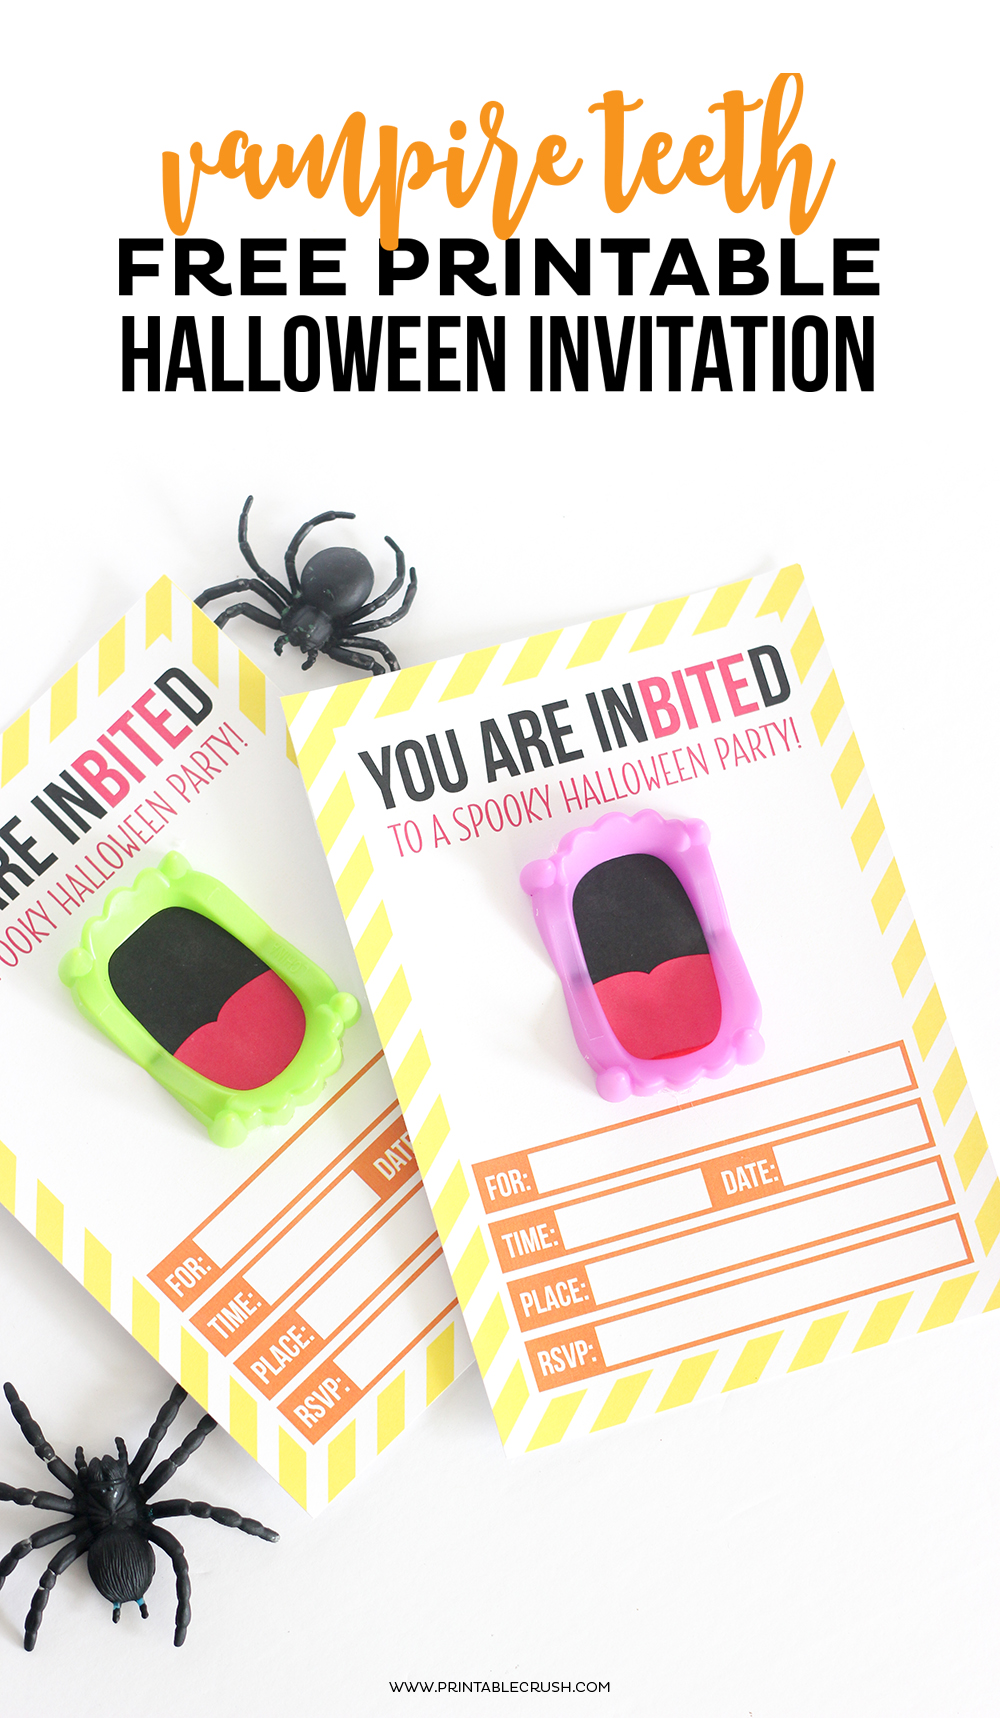 Download this FREE Printable Vampire Halloween Invitation for your Halloween Party! It's a fun, creative way to invite friends for a spooky get together!